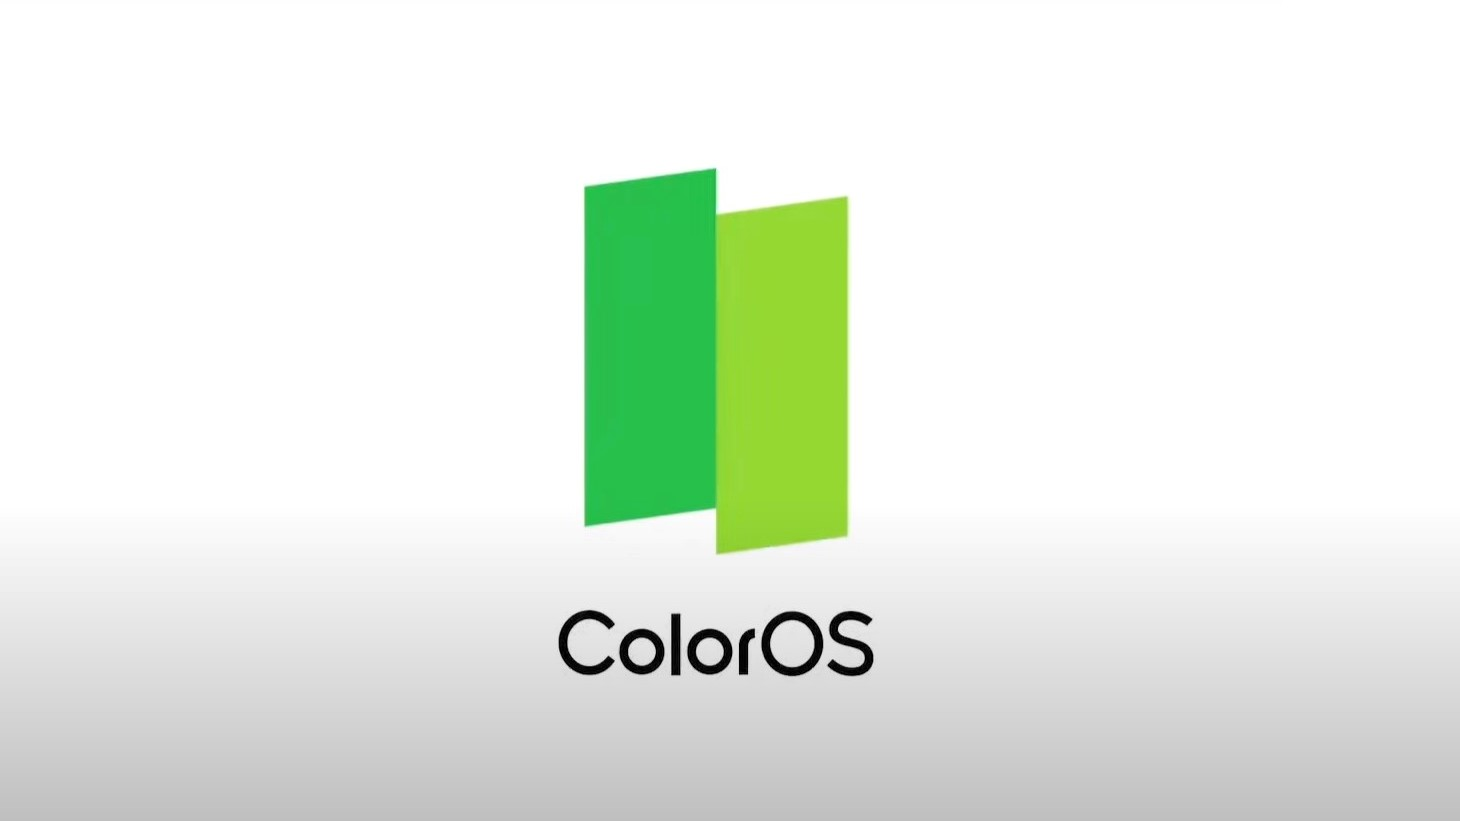 OPPO ColorOS 11 with Android 11